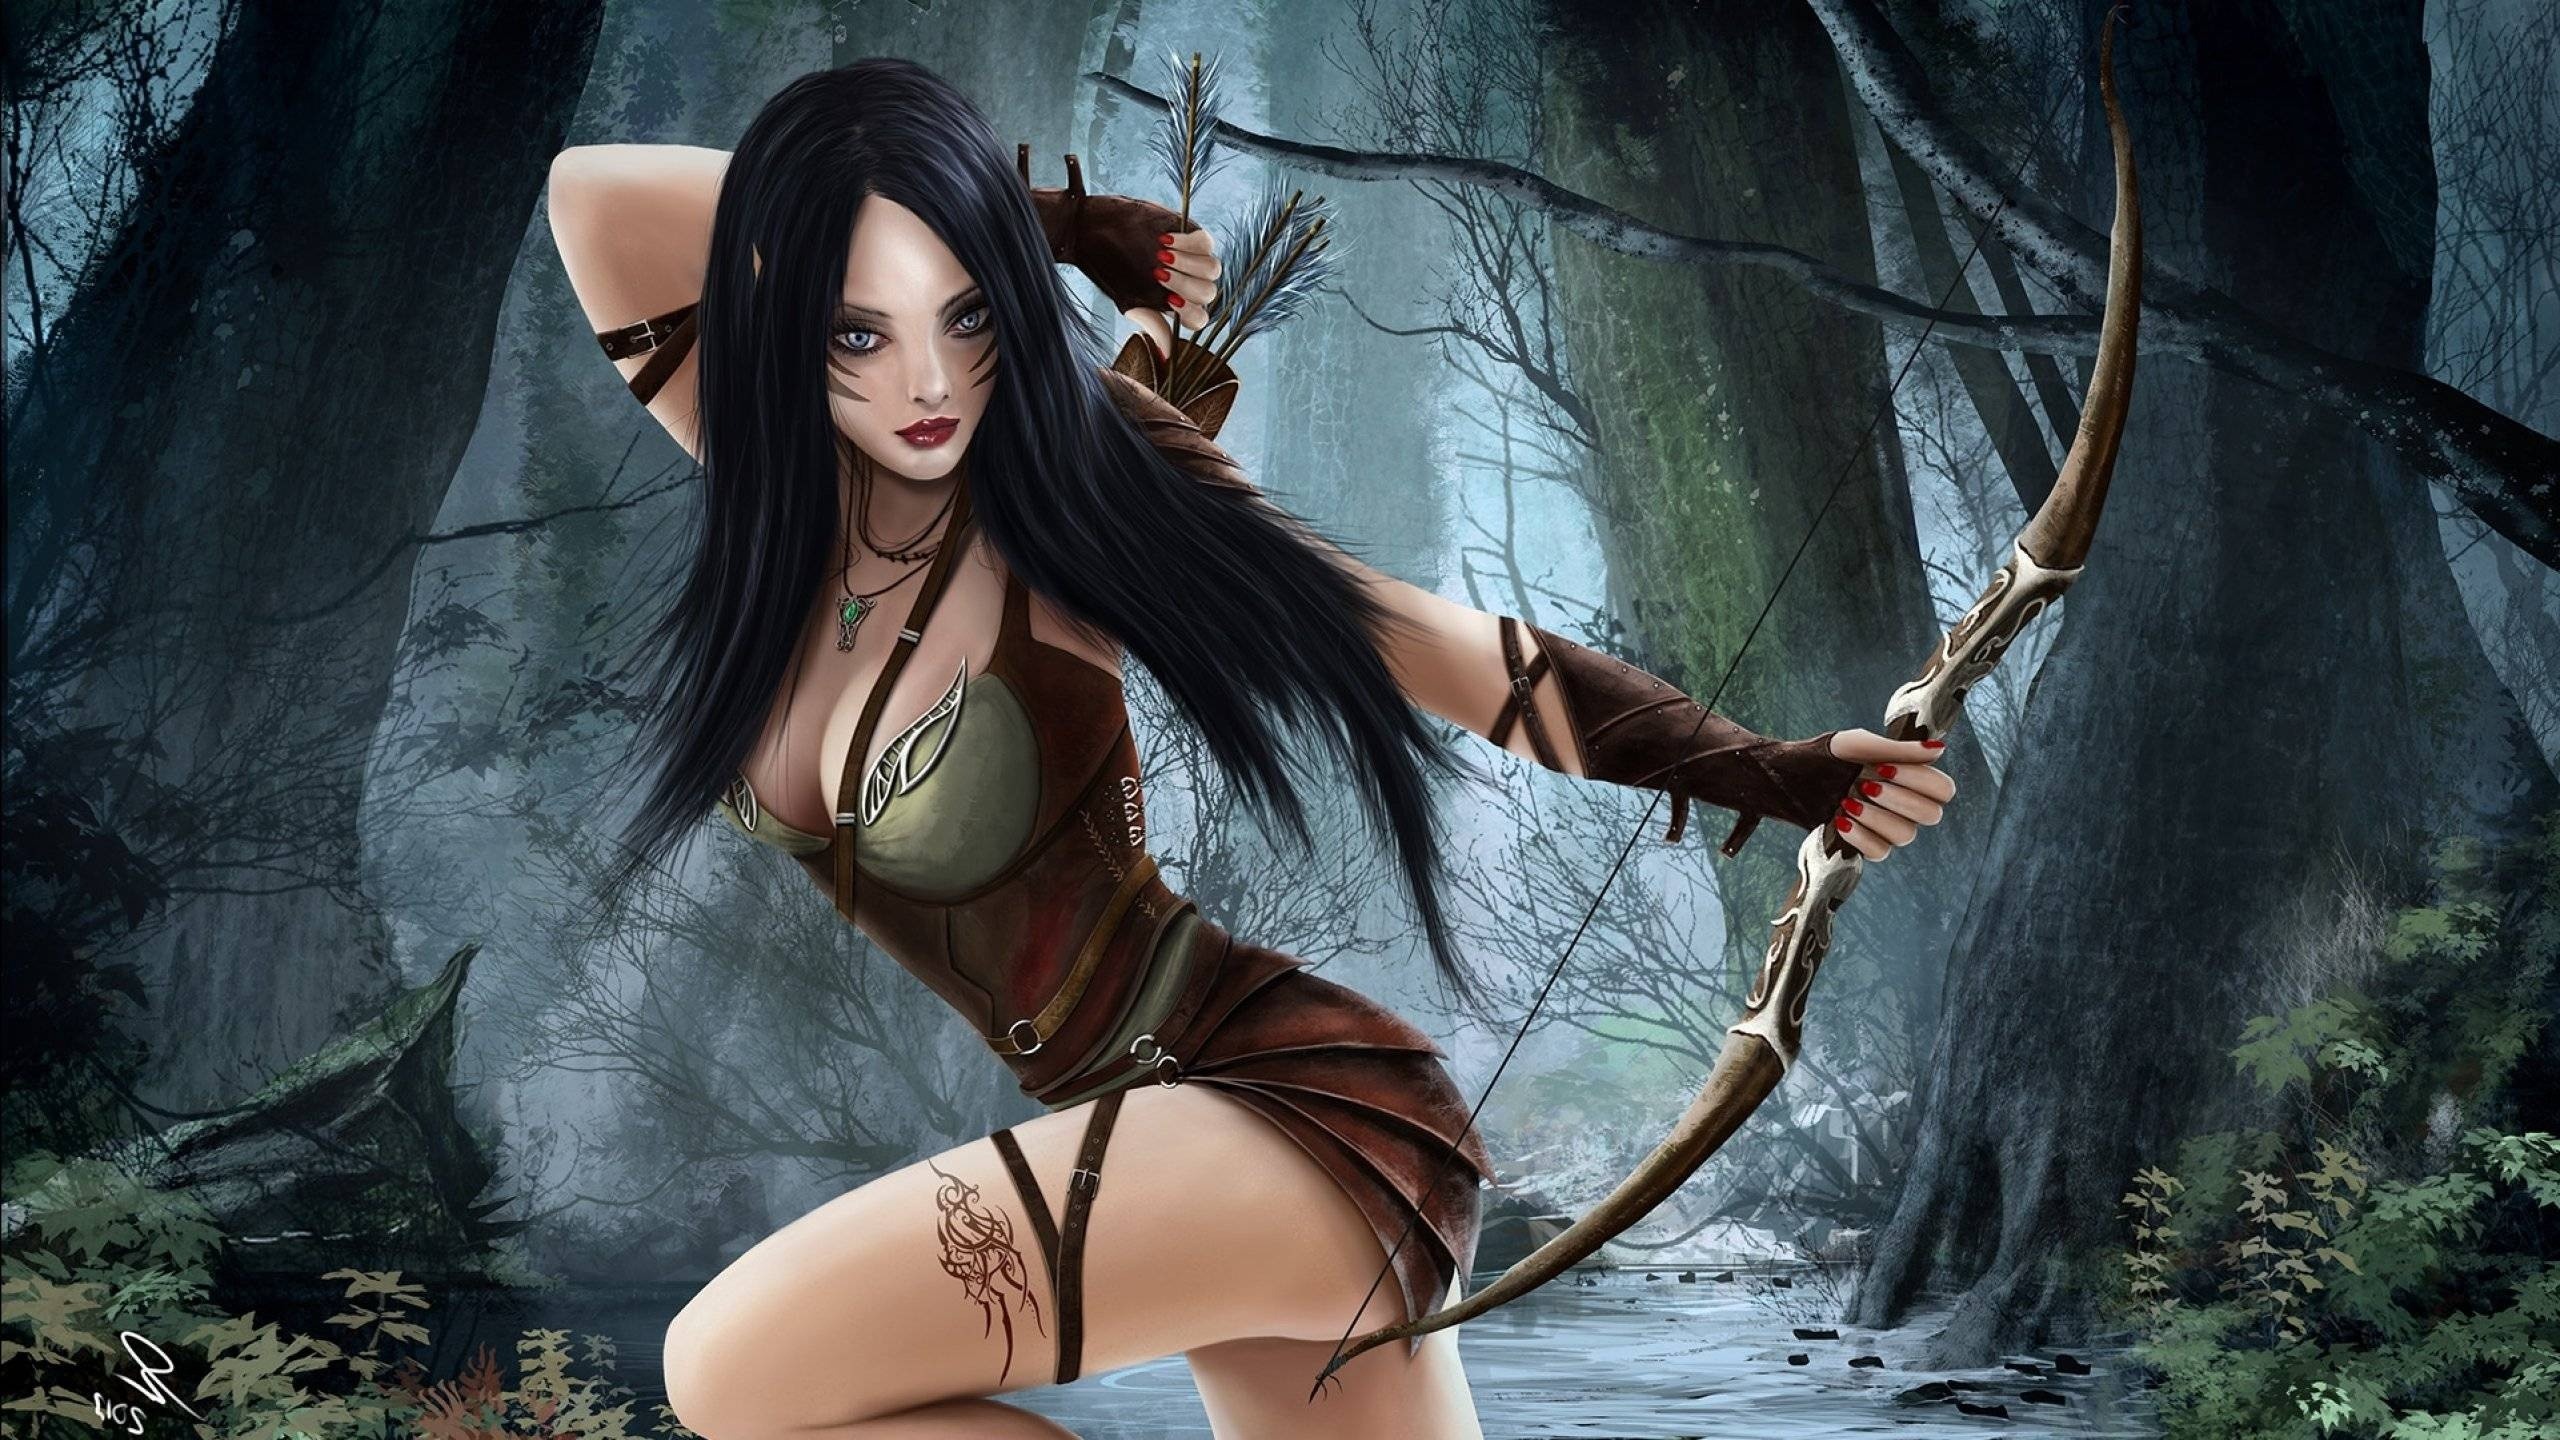 Jpg Wallpaper Girl Fantasy Woman Warrior Girl Beautiful Long Hair Wallpaper